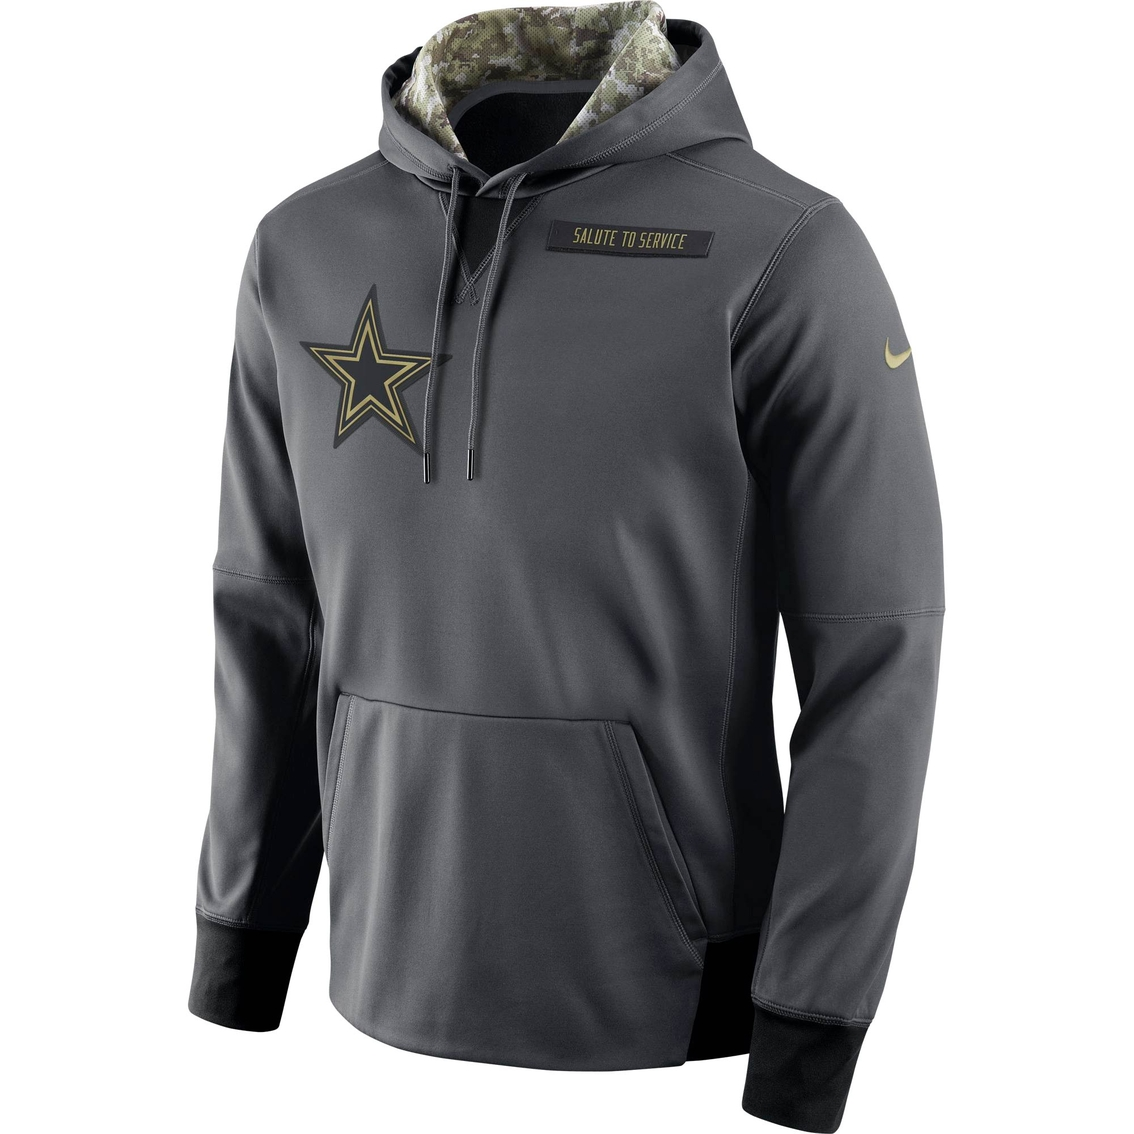 Nike Nfl Dallas Cowboys Salute To Service Fleece Pullover Jacket Nfl Sports Outdoors Shop The Exchange